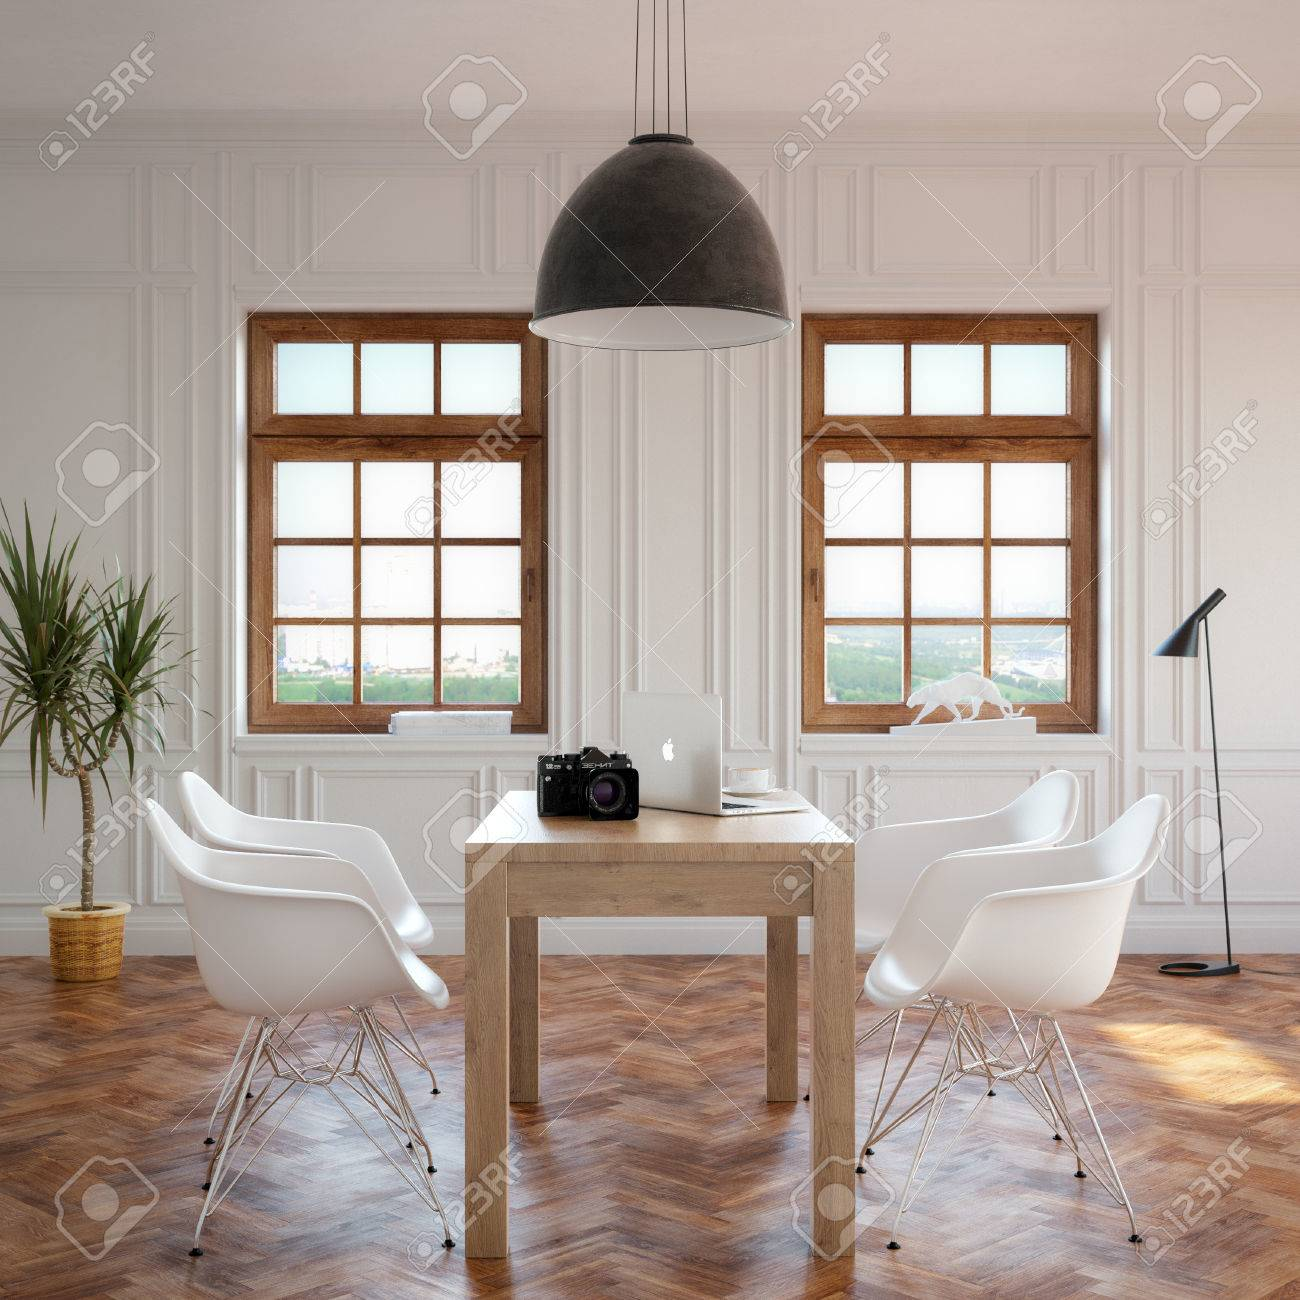 Elegance Dining Room With Classic Wooden Table And Cozy Chairs - 25203021